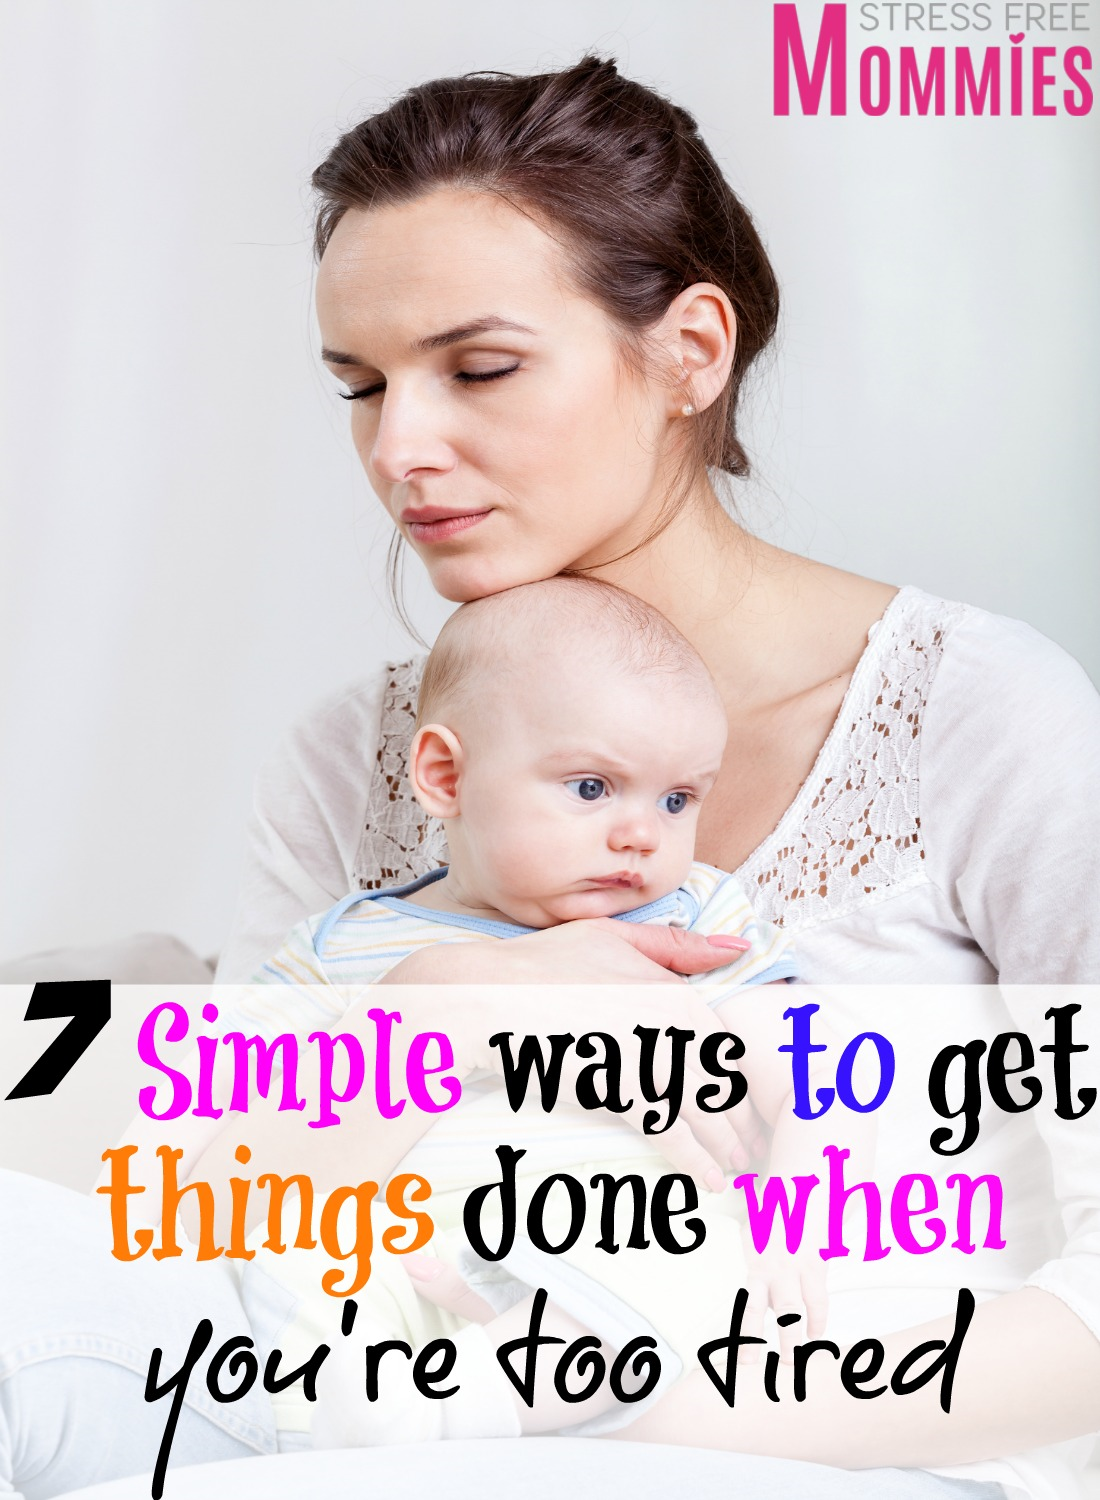 A good read for busy (tired) moms everywhere.